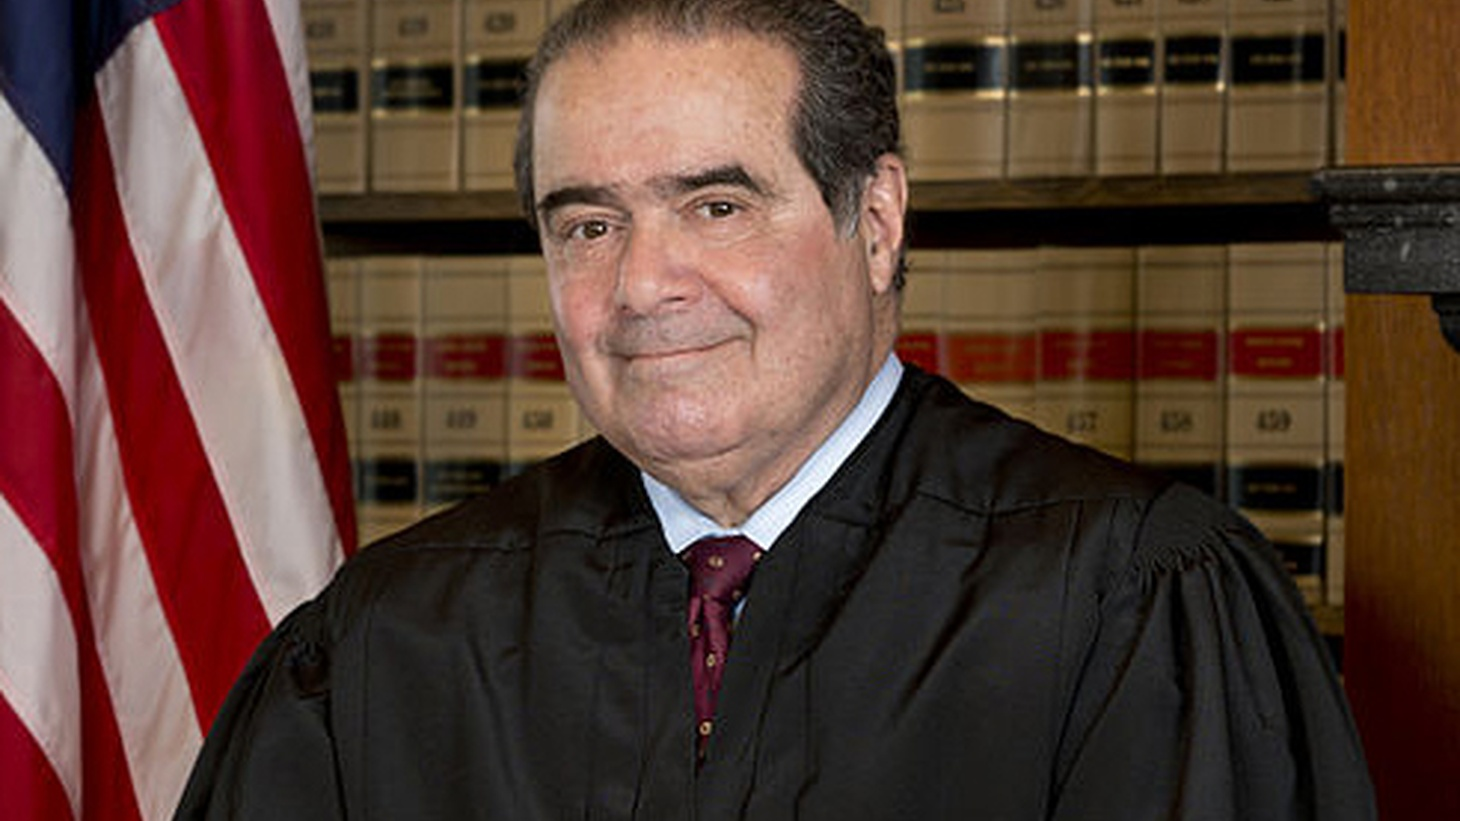 The legacy of the late US Supreme Court Justice Antonin Scalia in law and politics.